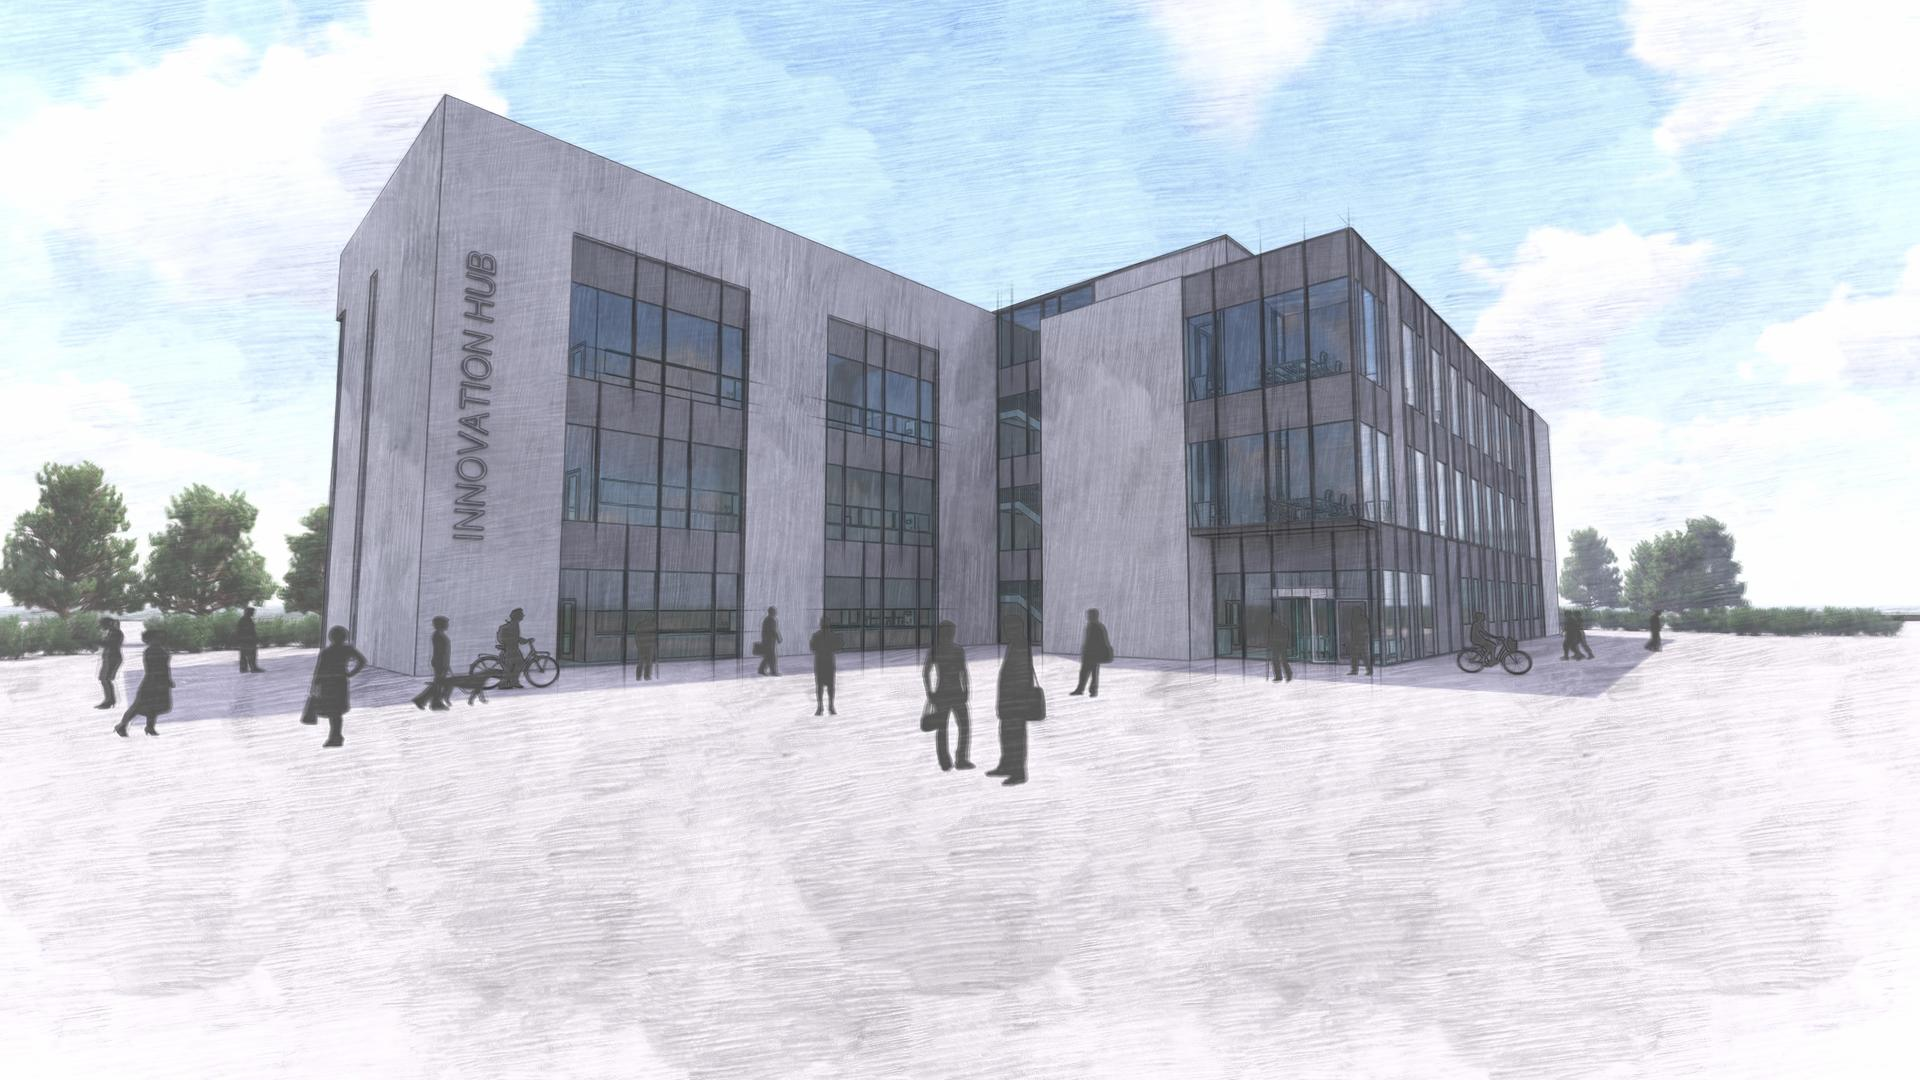 Artist's drawing of Dundee innovation hub